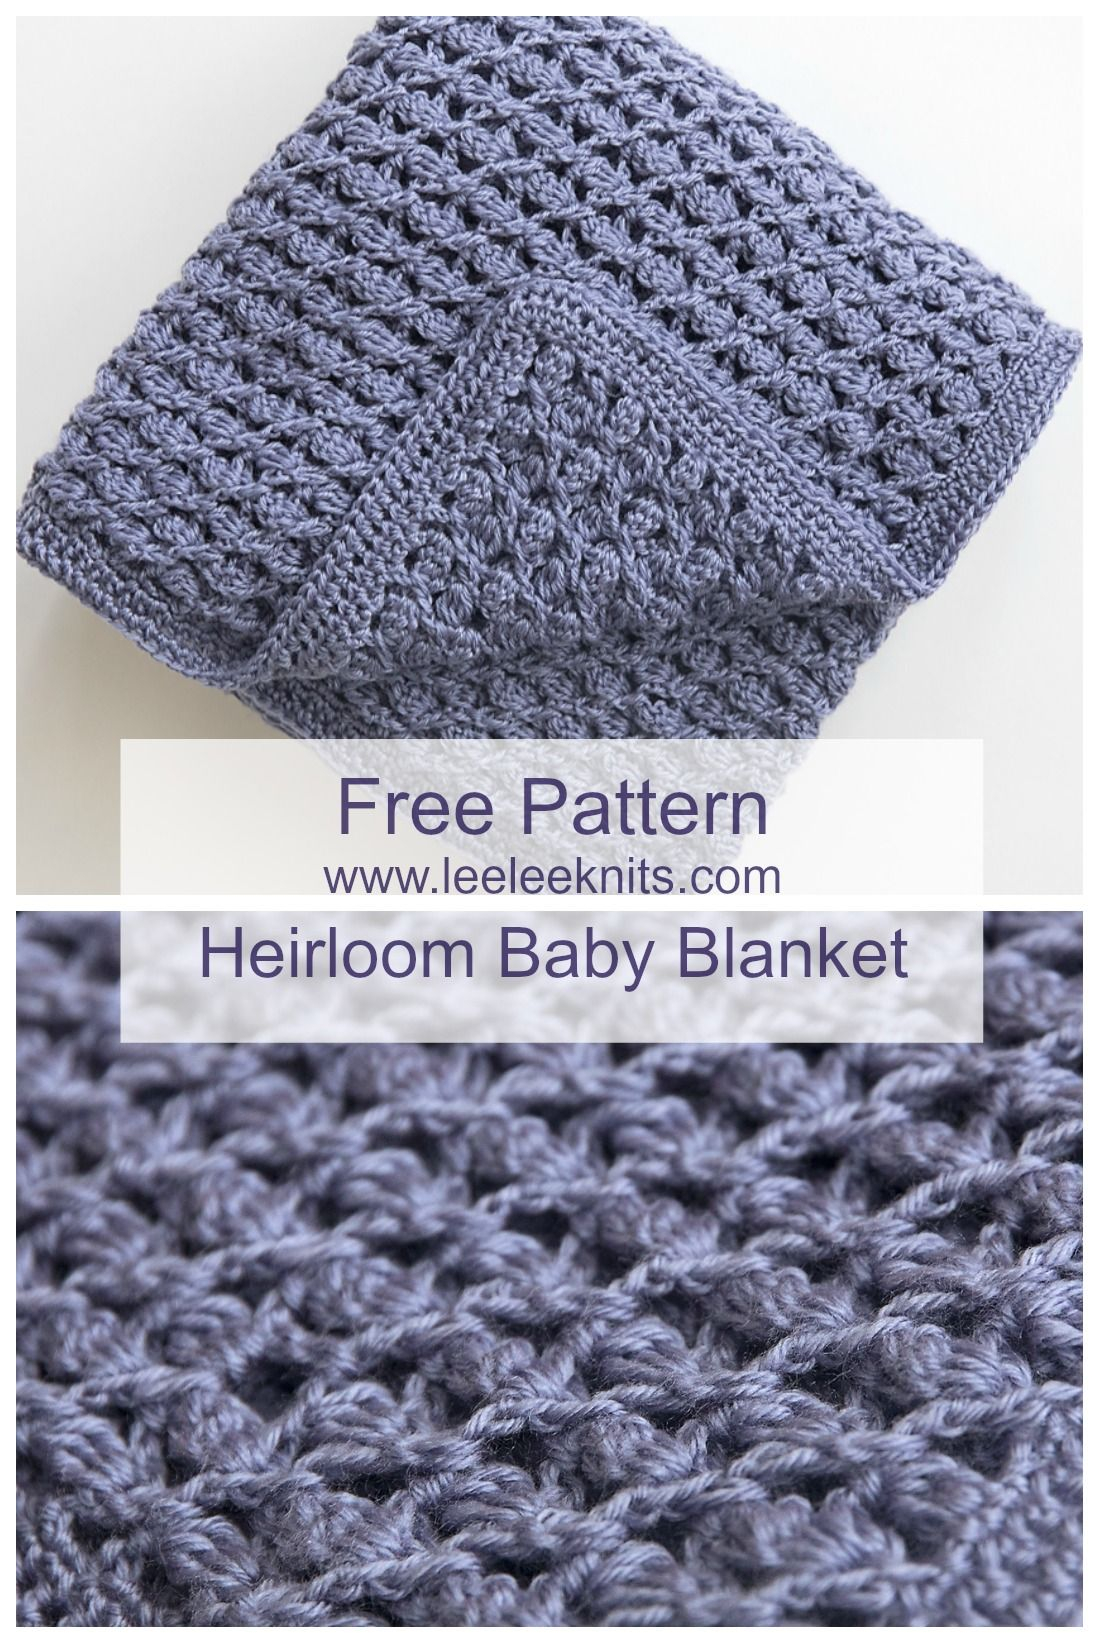 Crochet Patterns Free Free Heirloom Ba Blanket Crochet Pattern Crochet Pinterest